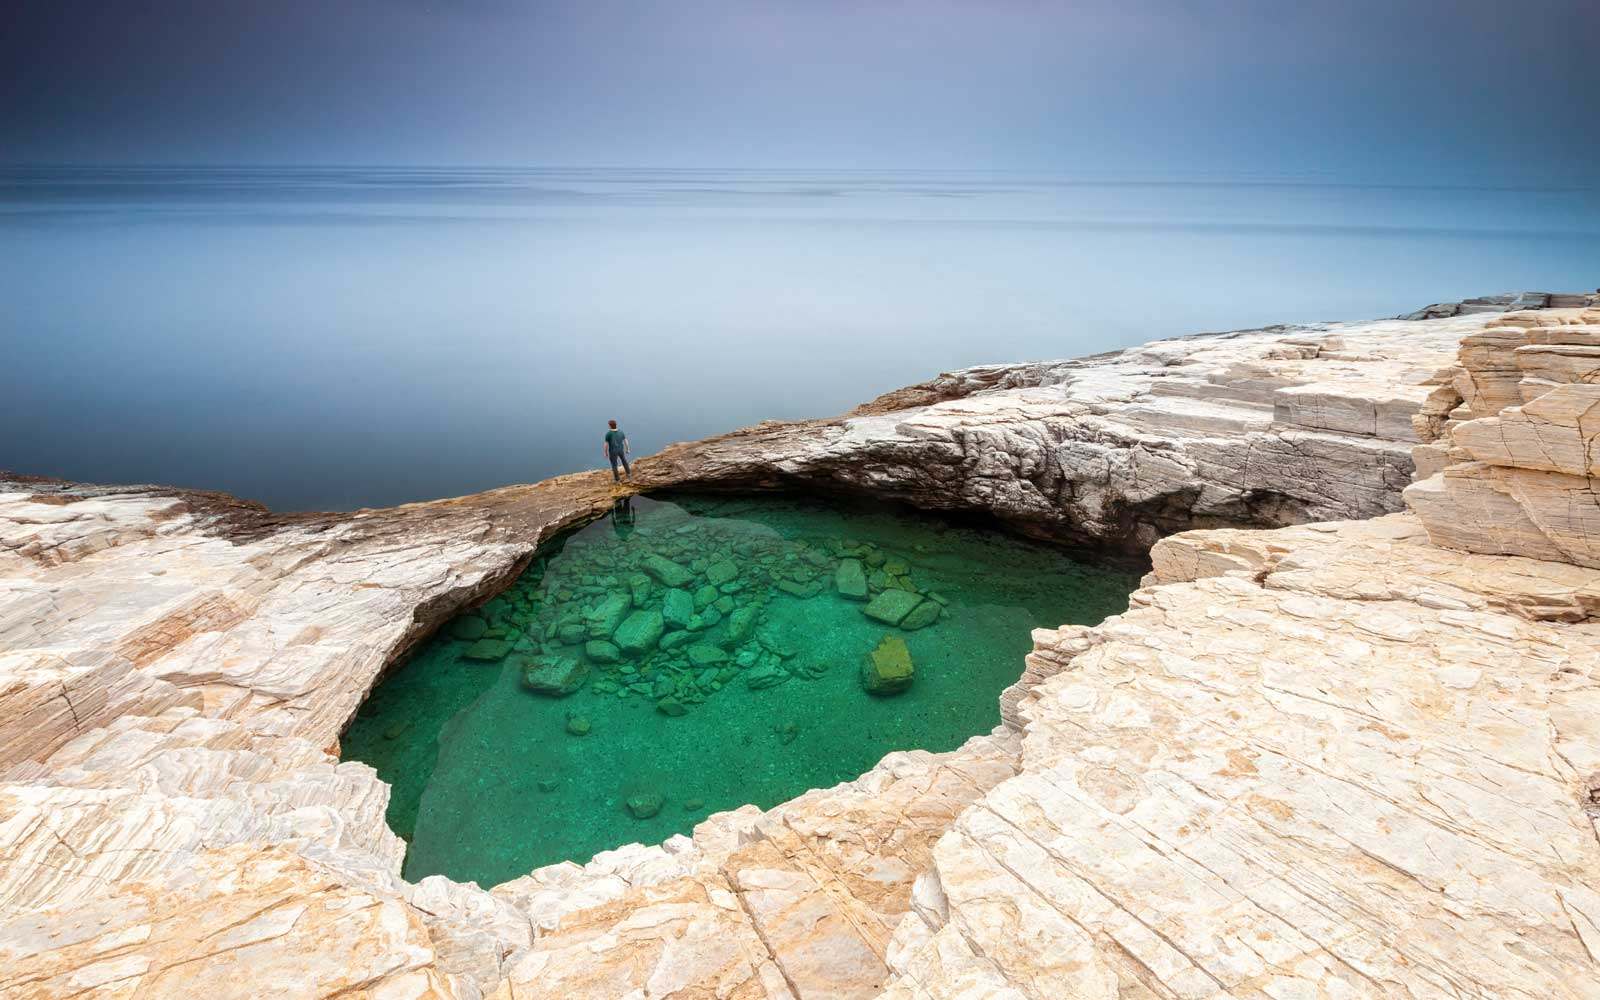 Giola is a natural pool located on the island of Thassos.